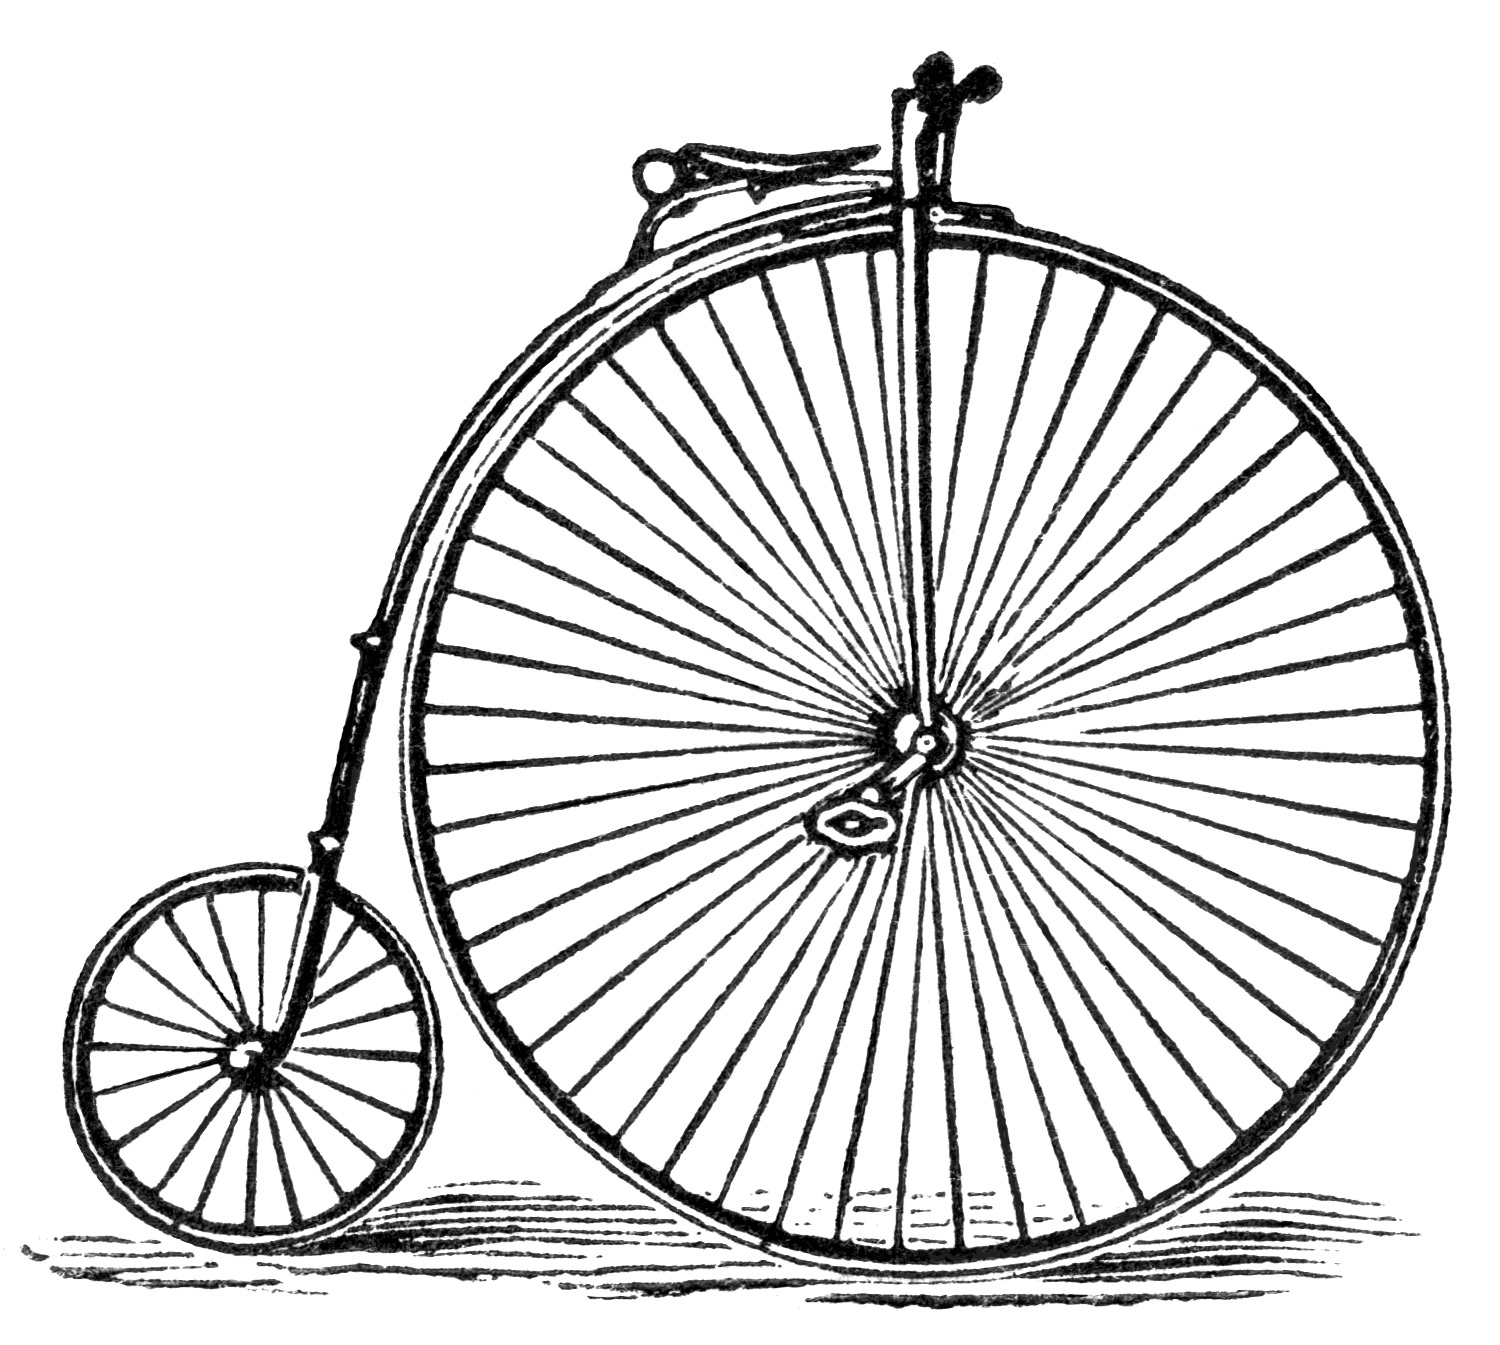 Here Is A Black And White Clipart Version Of The Bicycle From The Ad